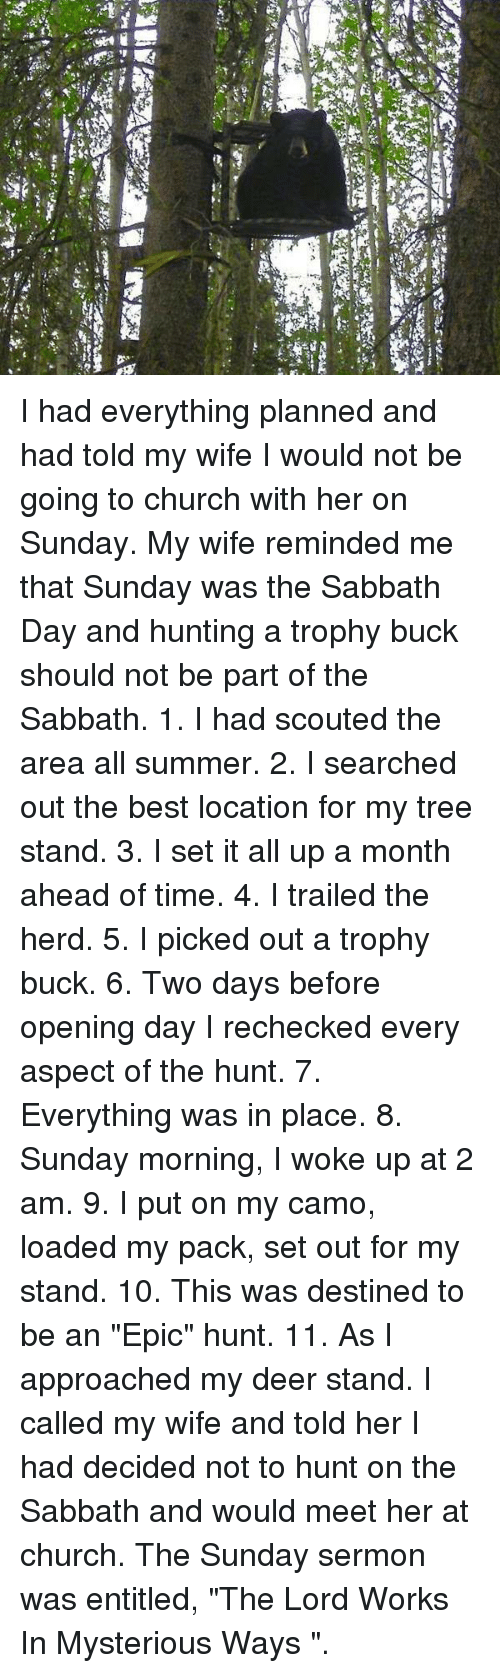 "Church, Deer, and Memes: I had everything planned and had told my wife I would not be going to church with her on Sunday. My wife reminded me that Sunday was the Sabbath Day and hunting a trophy buck should not be part of the Sabbath.   1. I had scouted the area all summer.   2. I searched out the best location for my tree stand.   3. I set it all up a month ahead of time.   4. I trailed the herd.   5. I picked out a trophy buck.   6. Two days before opening day I rechecked every aspect of the hunt.   7. Everything was in place.   8. Sunday morning, I woke up at 2 am.   9. I put on my camo, loaded my pack, set out for my stand.   10. This was destined to be an ""Epic"" hunt.   11. As I approached my deer stand.    I called my wife and told her I had decided not to hunt on the Sabbath and would meet her at church. The Sunday sermon was entitled, ""The Lord Works In Mysterious Ways ""."